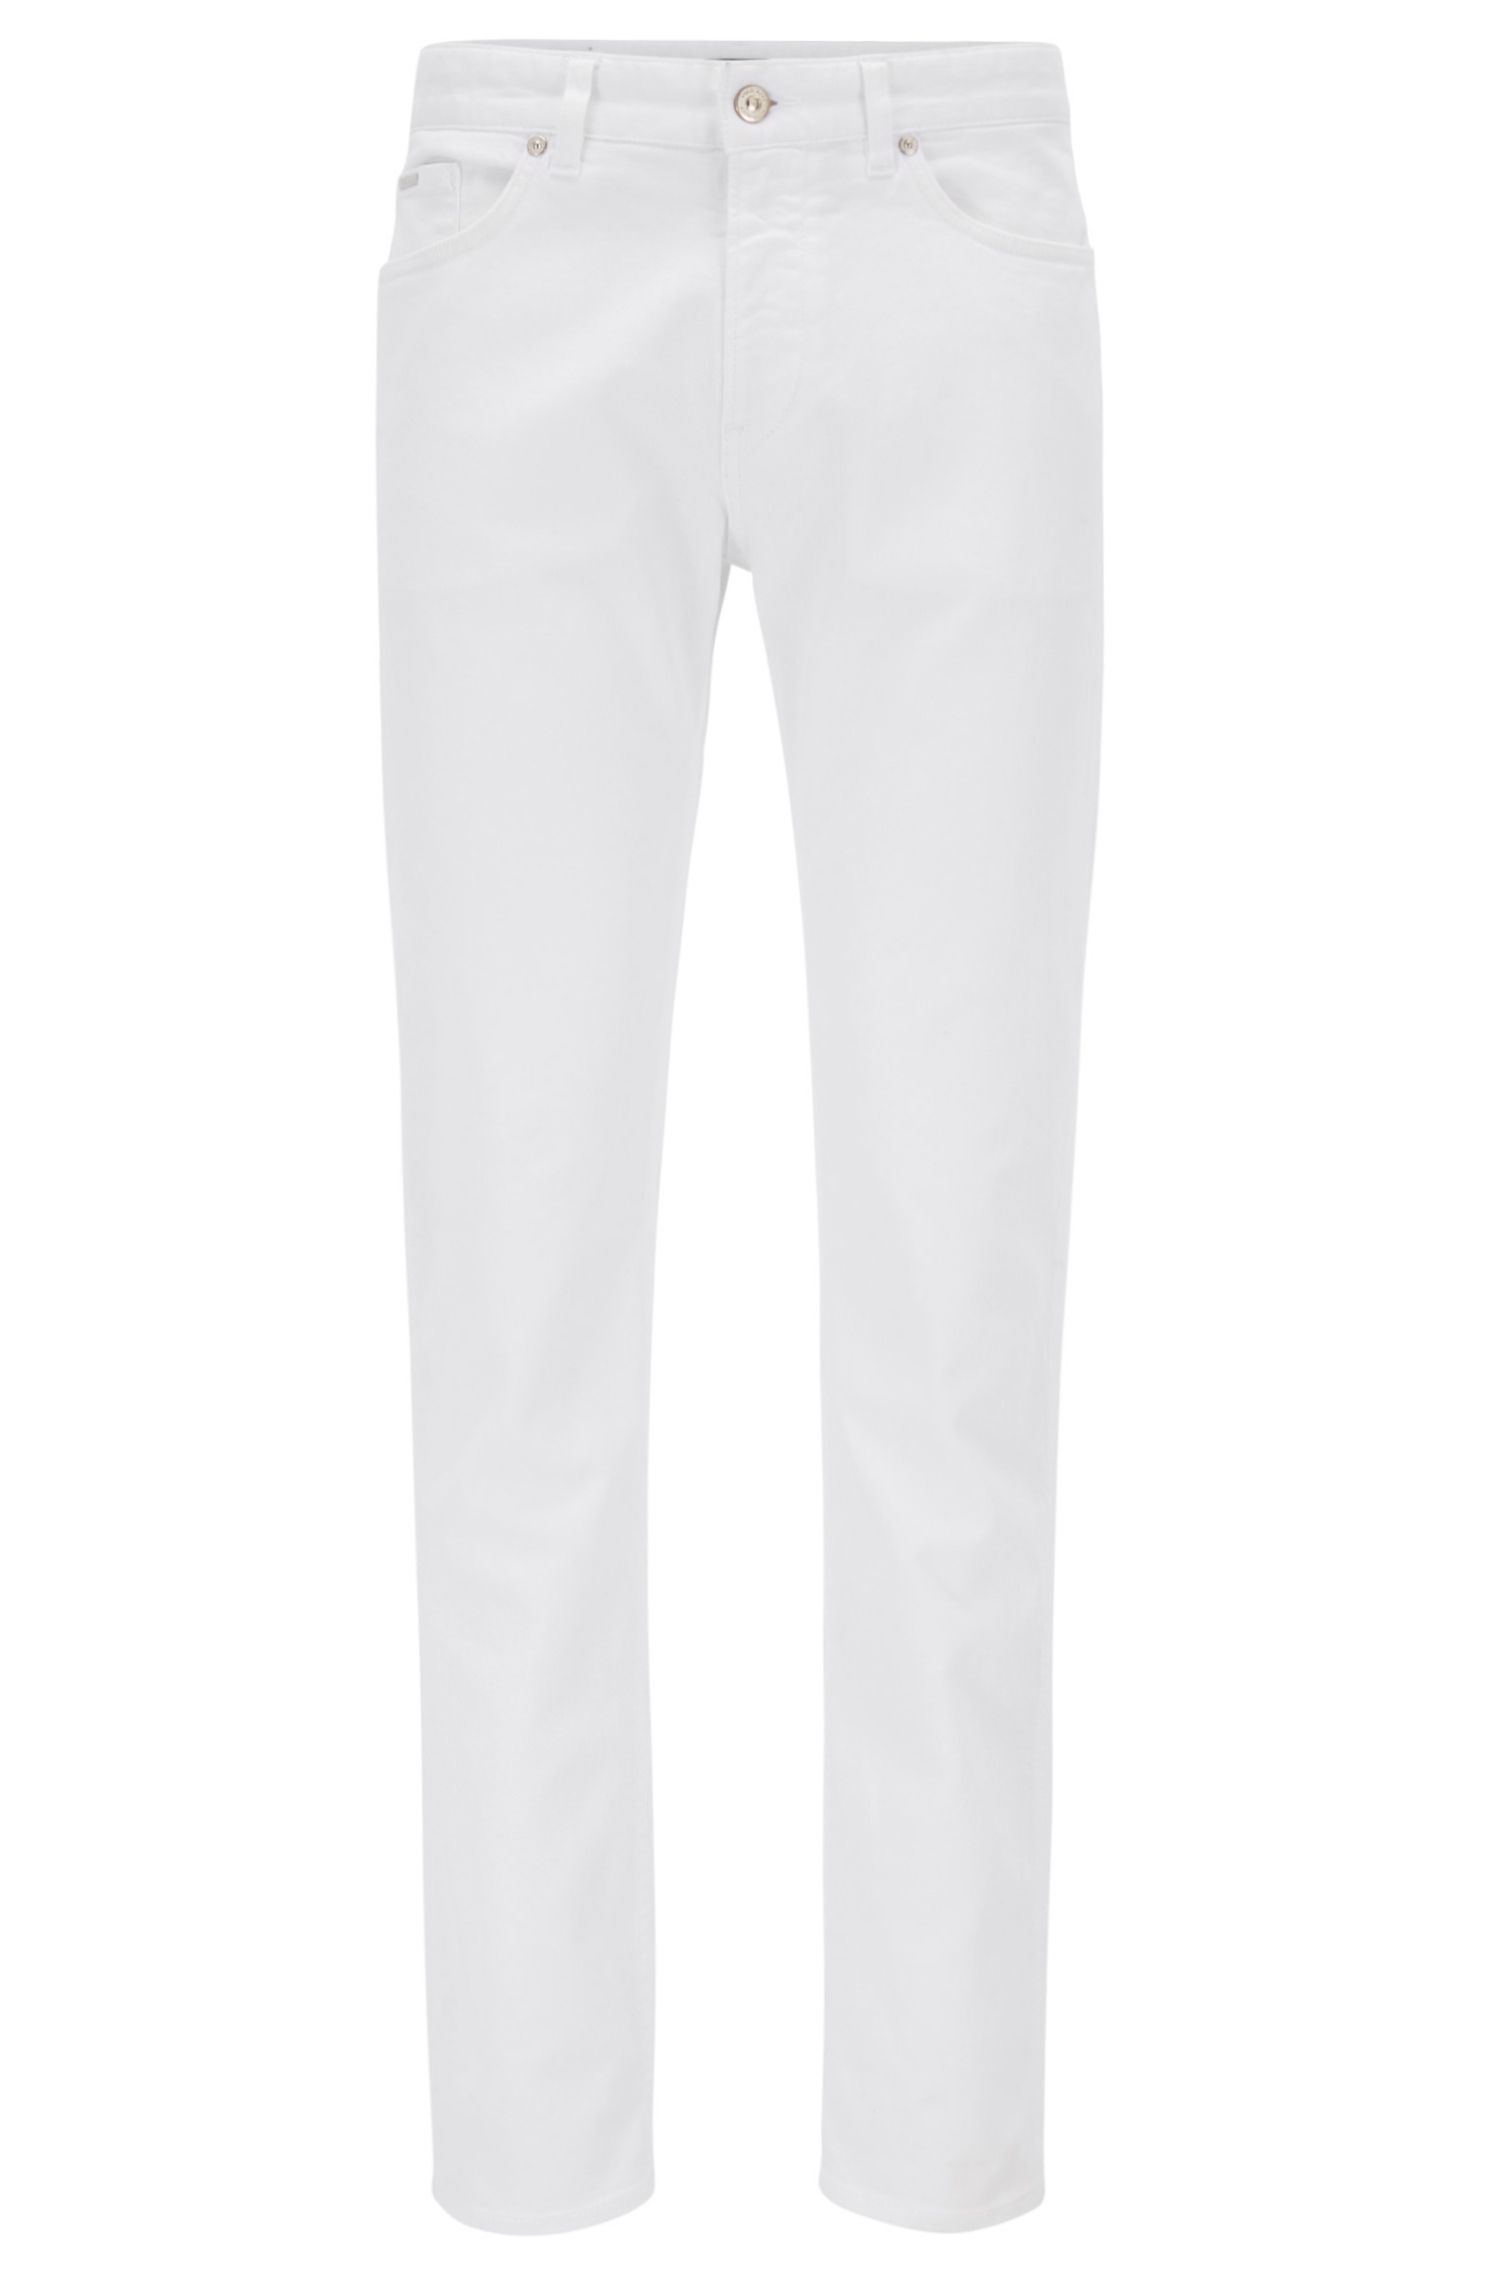 Unifarbene Slim-Fit Jeans aus Stretch-Baumwolle: 'Delaware3'